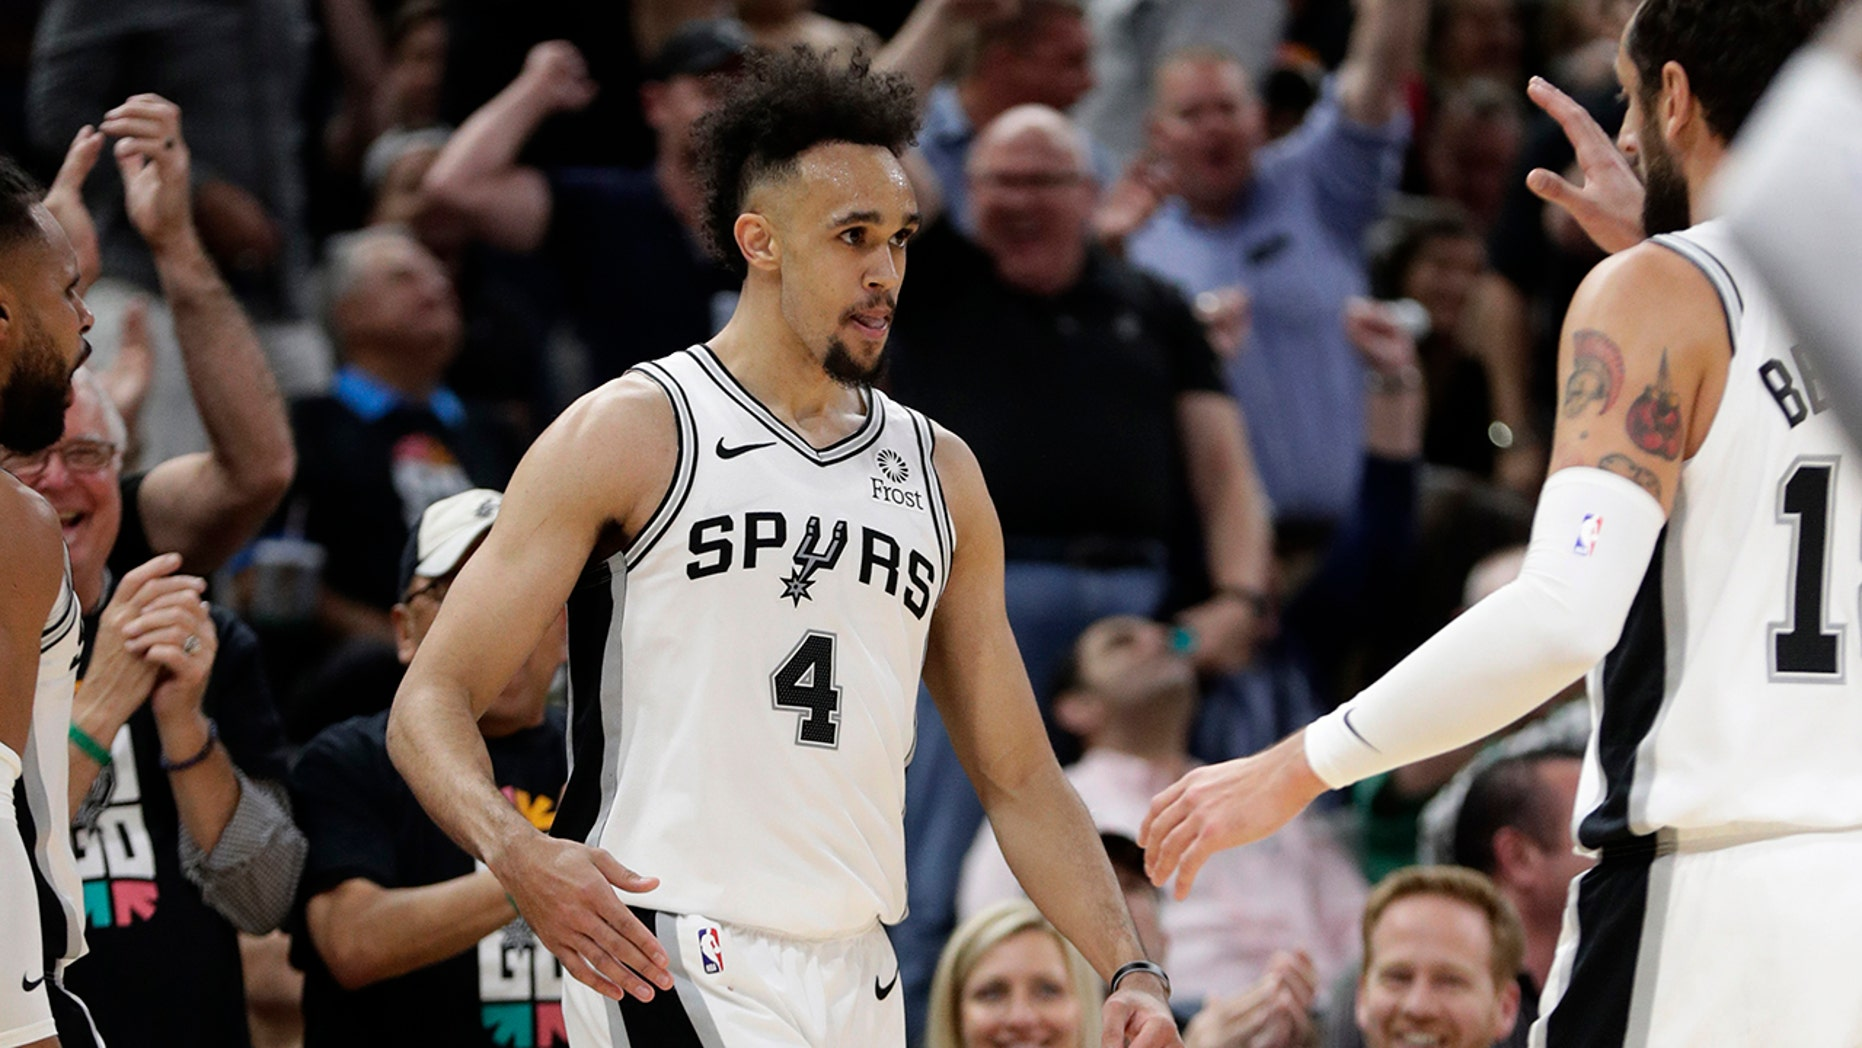 San Antonio Spurs ensure Derrick White (4) celebrates a measure opposite a Denver Nuggets with teammates during a initial half of Game 3 of an NBA basketball playoff array in San Antonio, Thursday, Apr 18, 2019. San Antonio won 118-108. (AP Photo/Eric Gay)